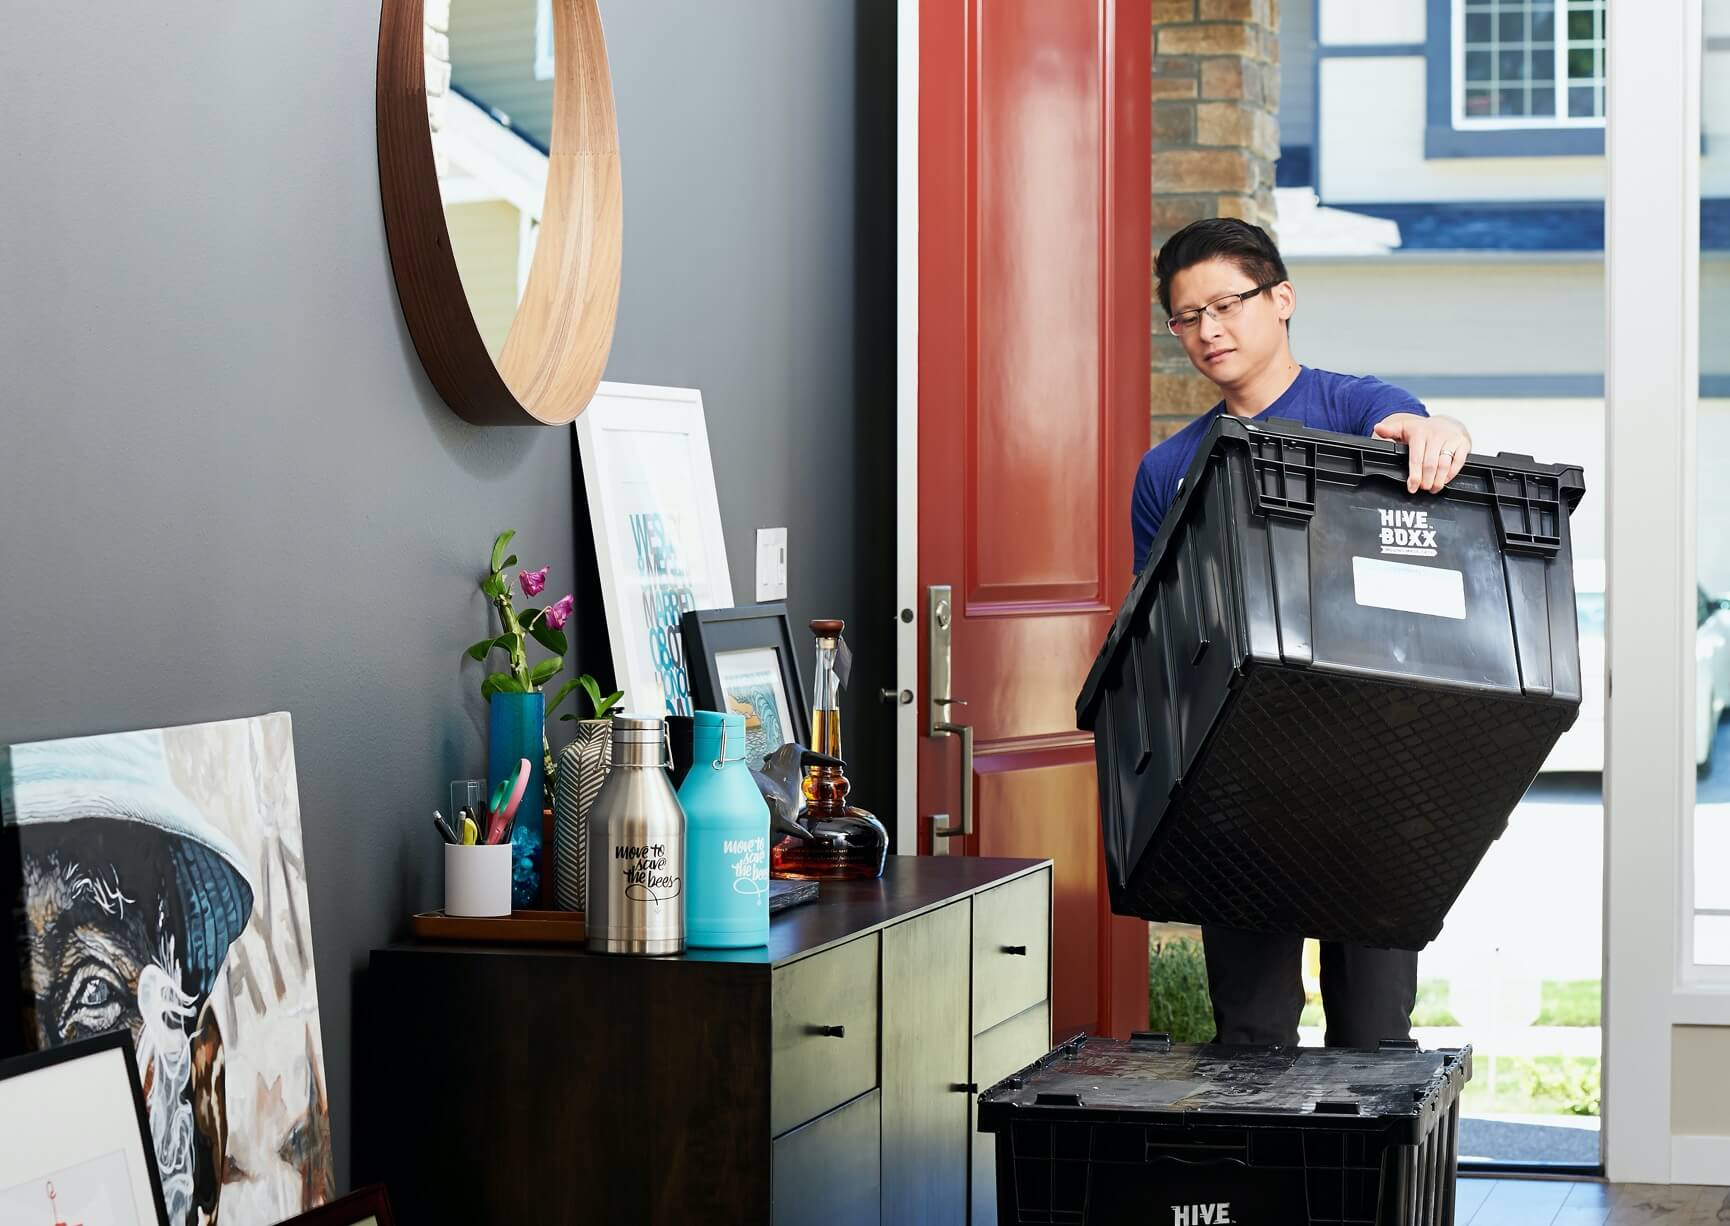 Things You Need To Do Before Moving Into a New House